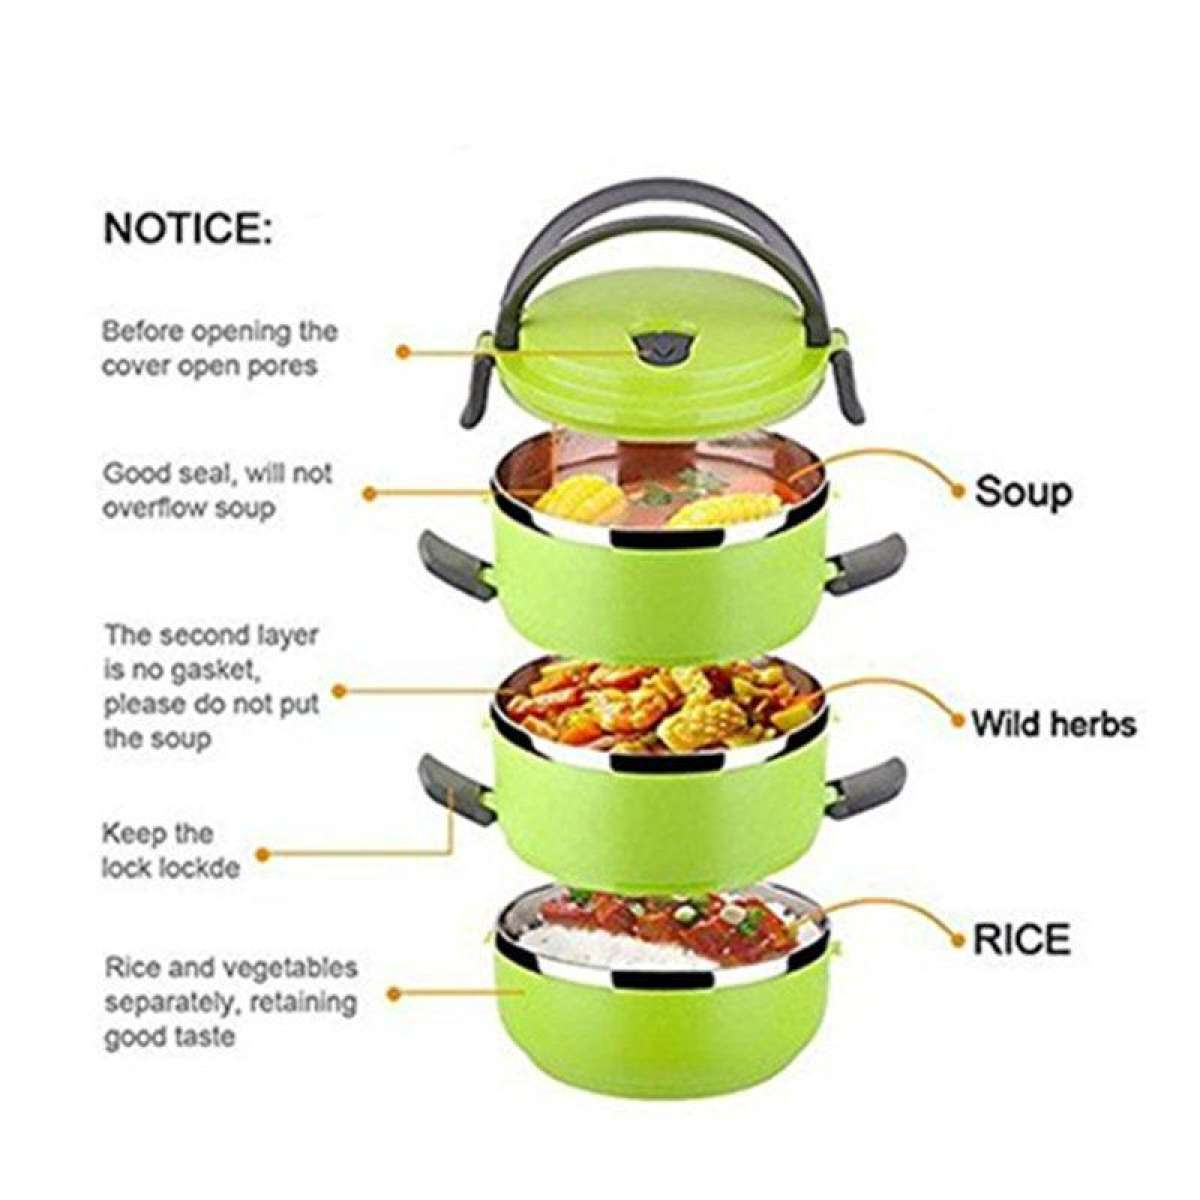 Easy Lock Stainless Steel Lunch Box 3 Layers (LB-03) Gallery Image 1